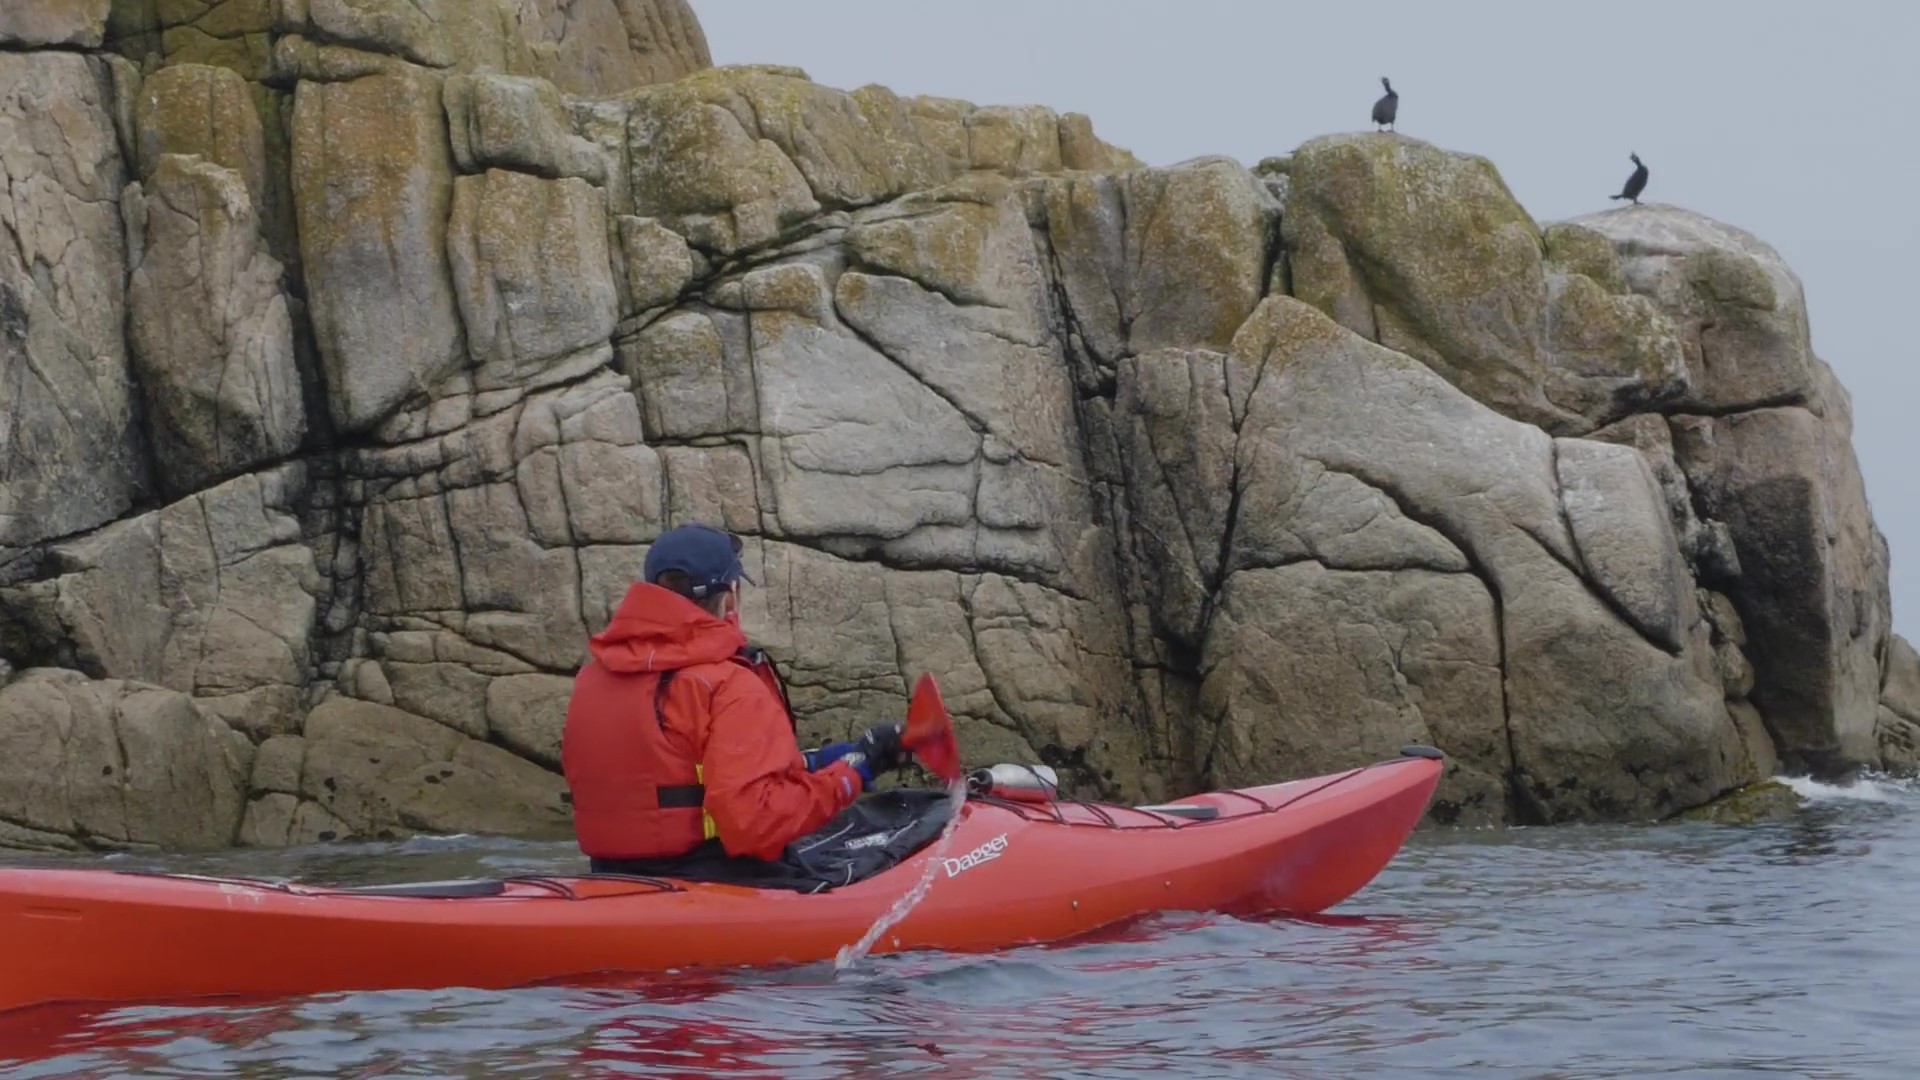 Sea kayaking with wildlife